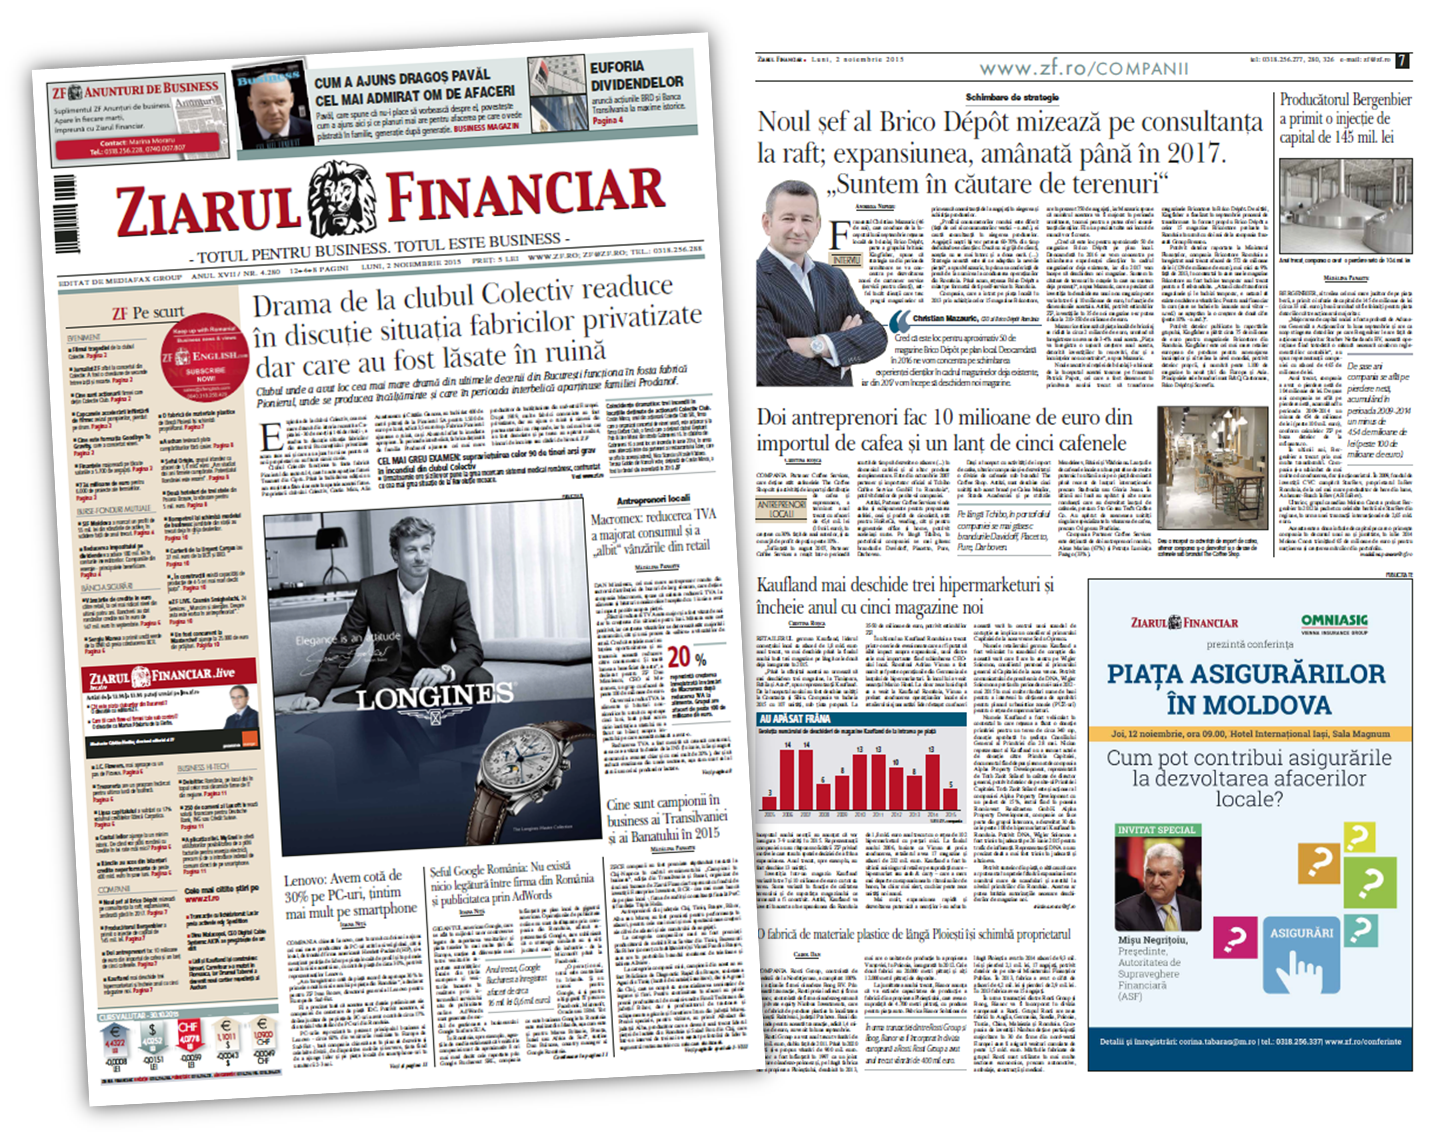 Ziarul Financiar, November 2015